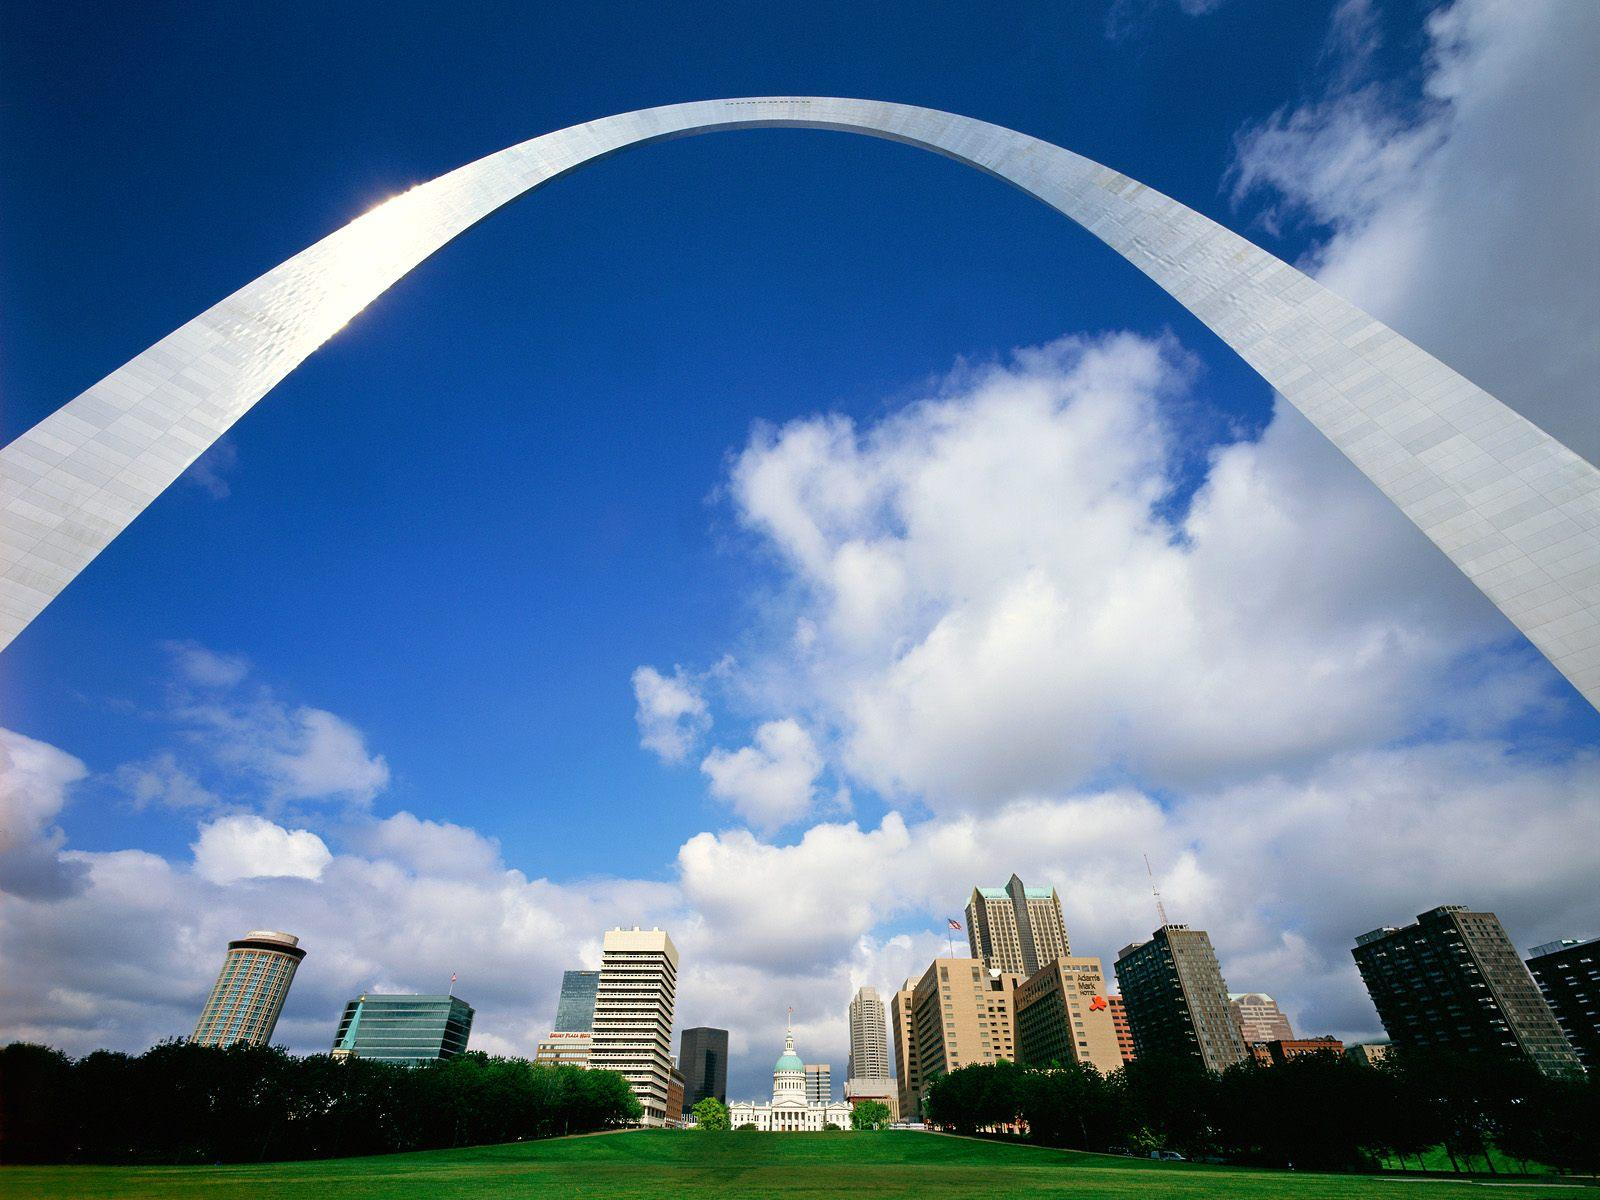 Wallpaper Blink - St. Louis Wallpaper HD 11 - 1600 X 1200 for ...